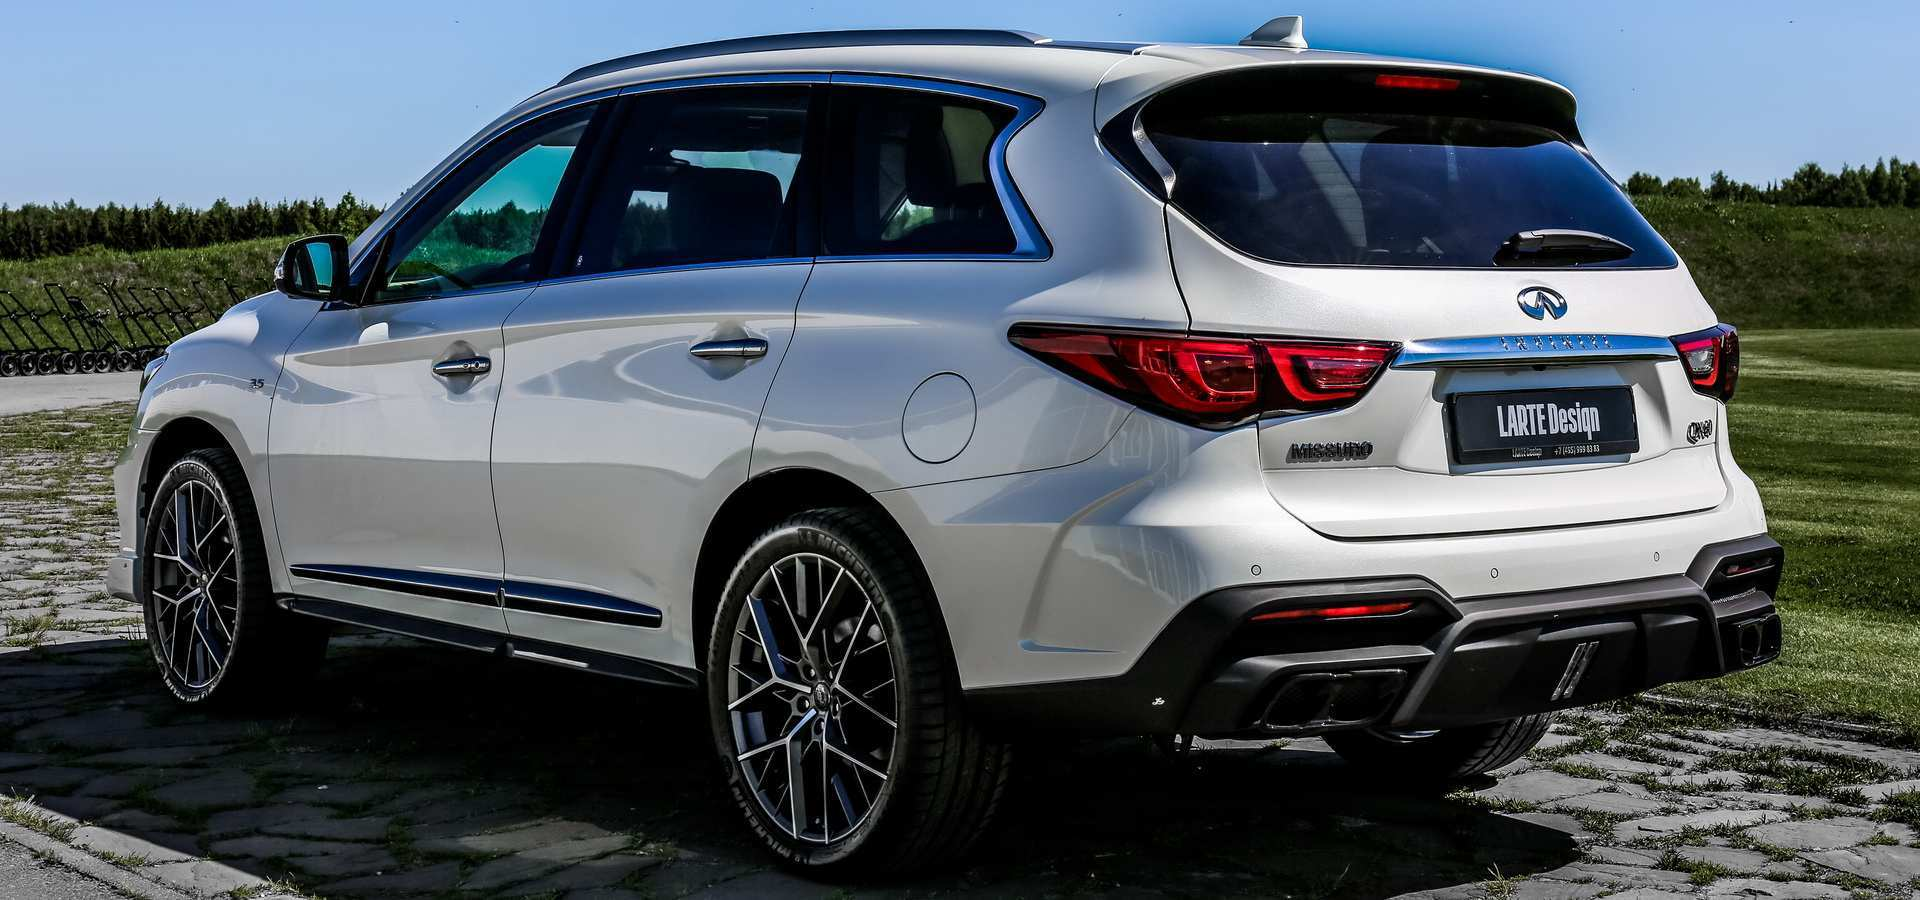 63 All New When Does The 2020 Infiniti Qx60 Come Out Release